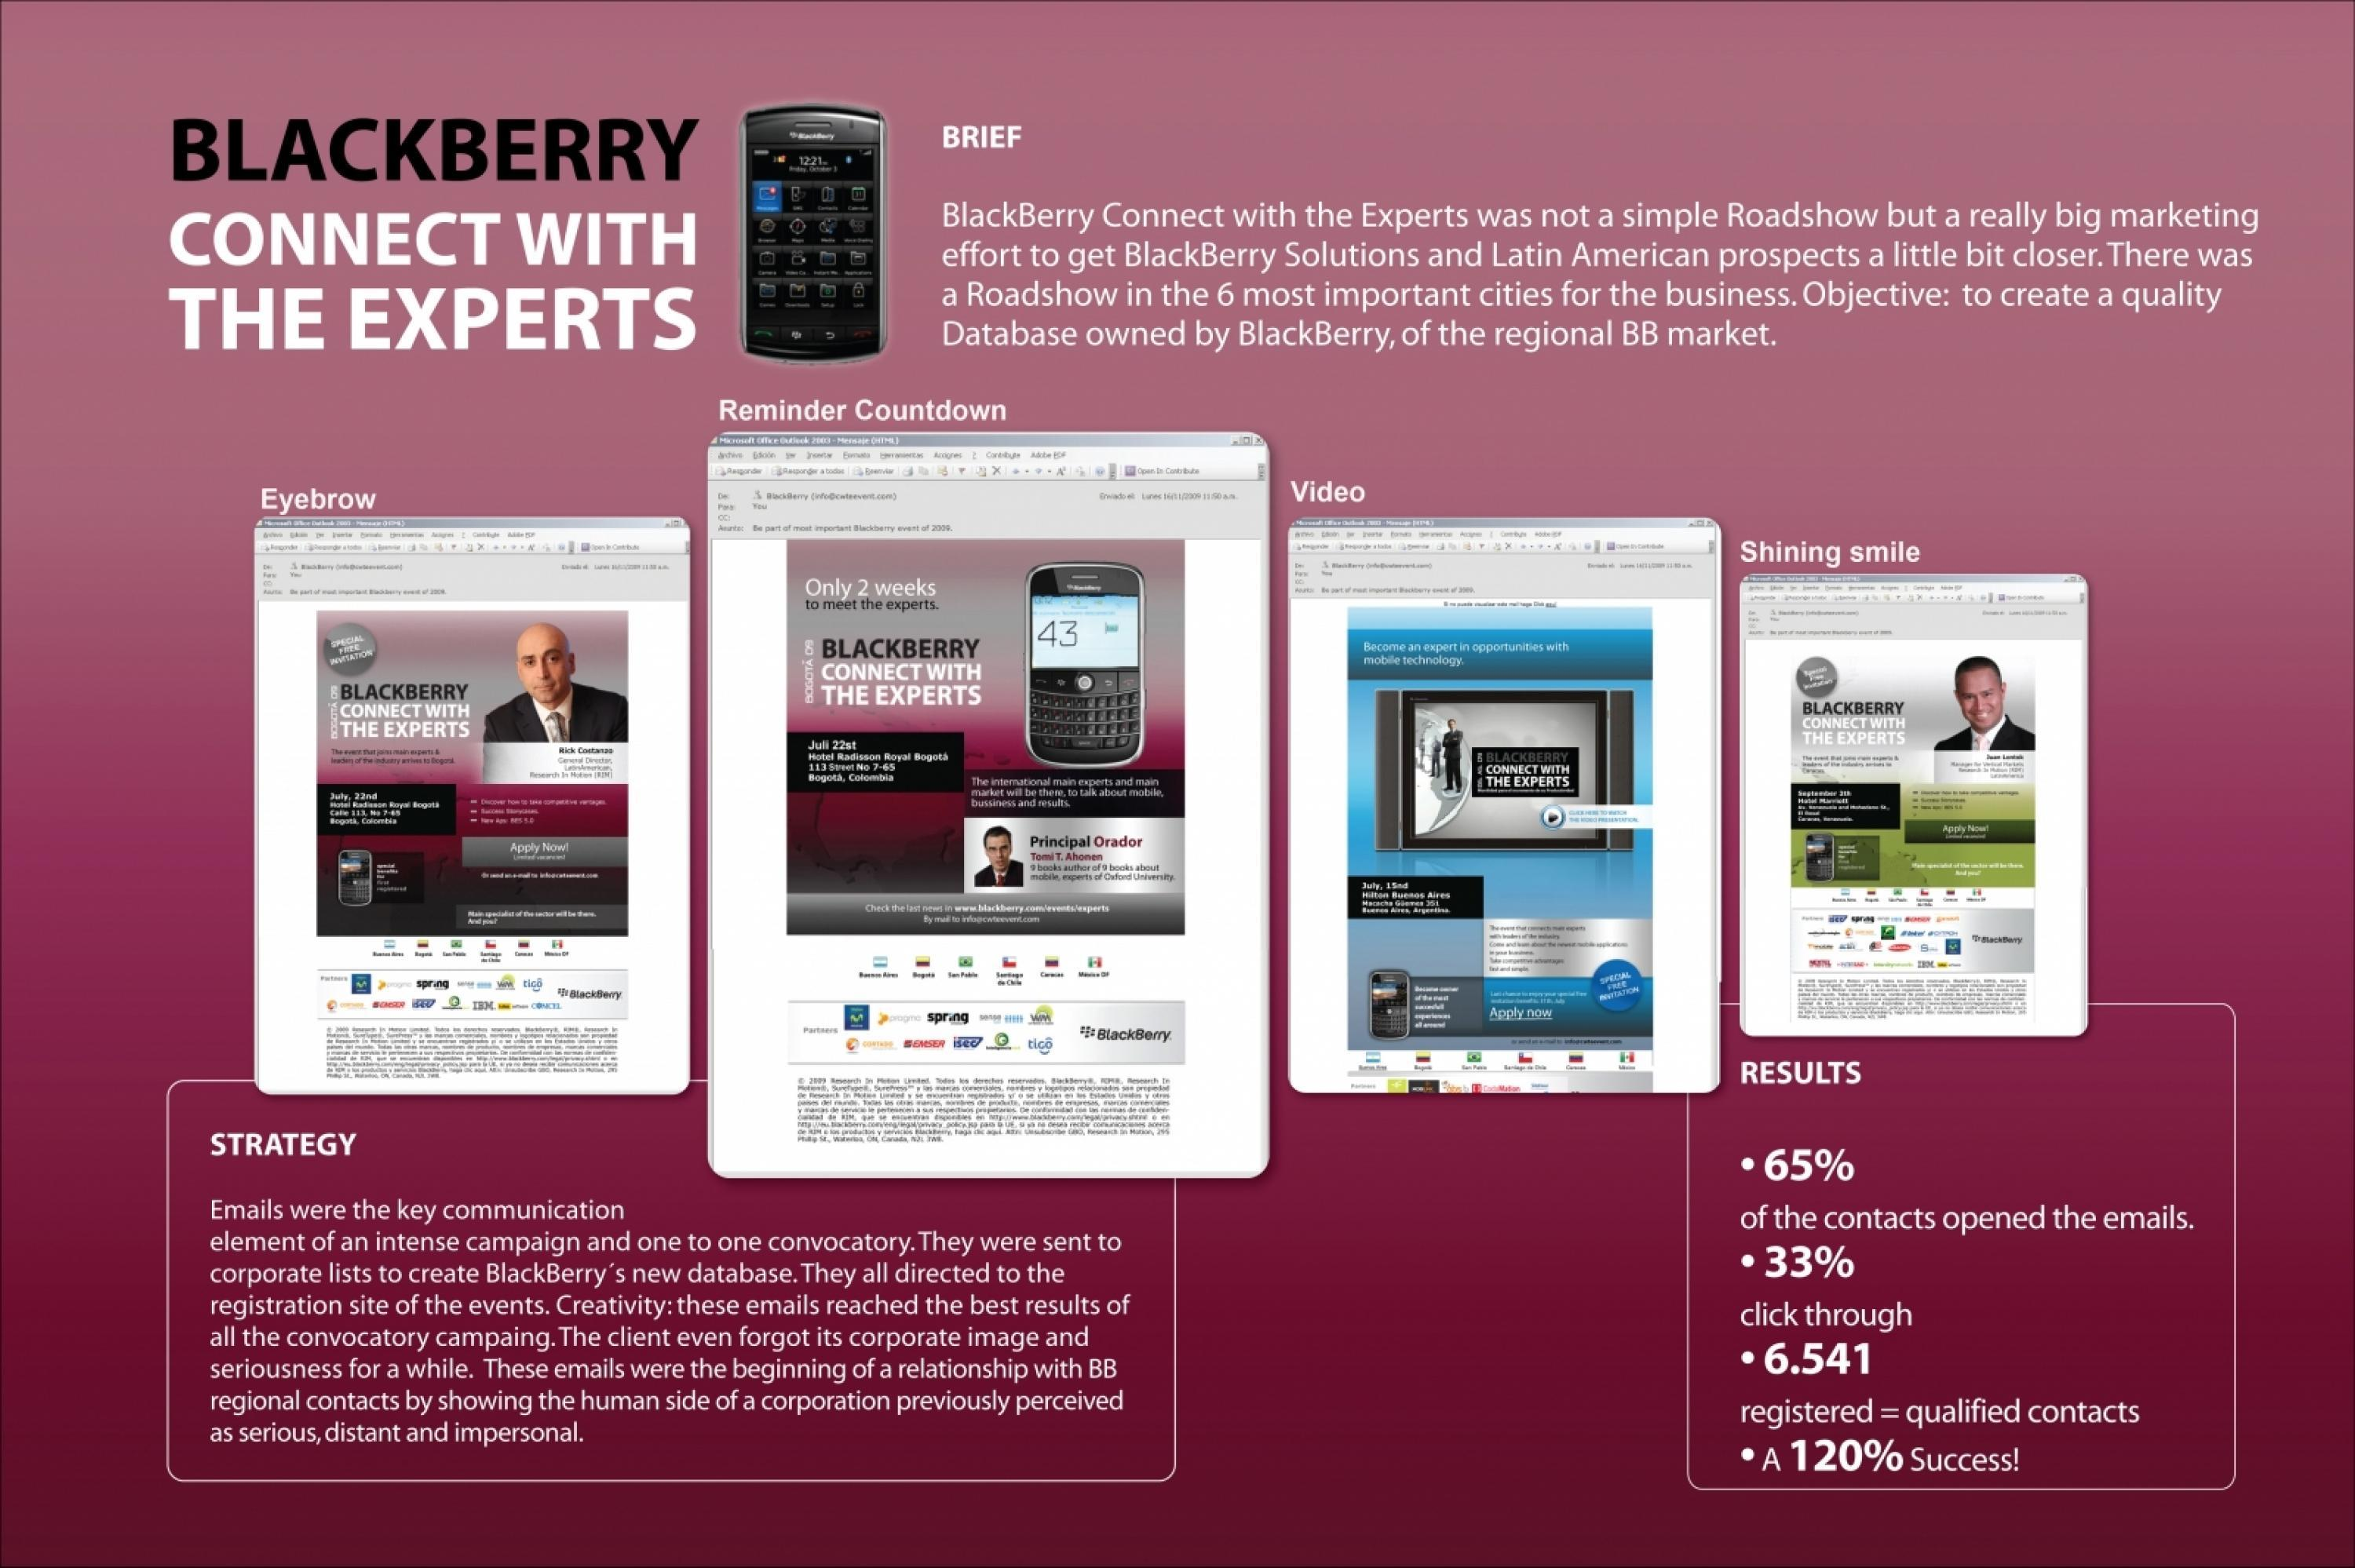 Adeevee | Only selected creativity - Blackberry Connect With